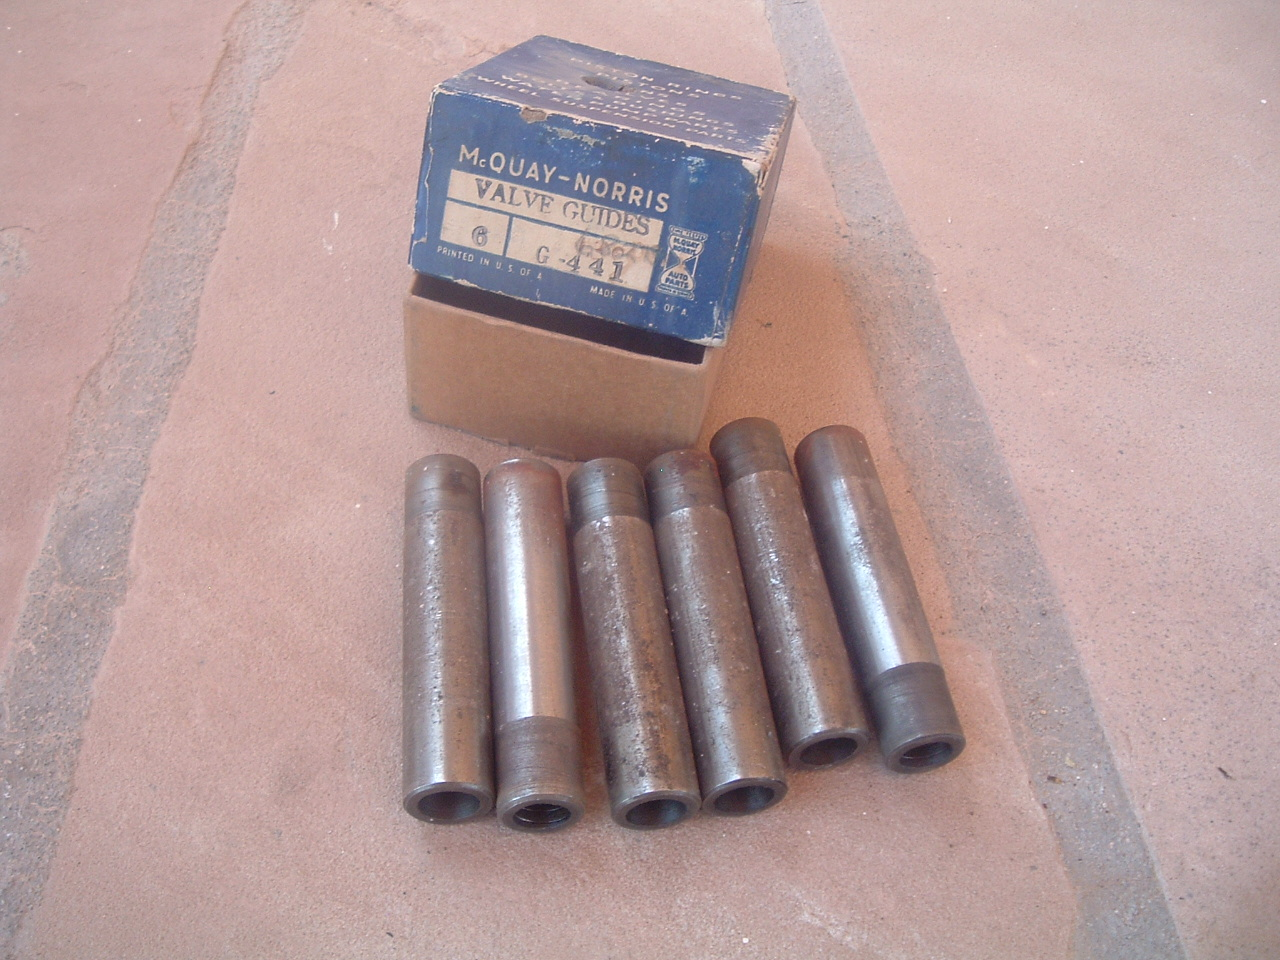 Search Results 1953 Dodge Truck Fuel Filter 1946 47 48 49 50 51 52 53 Valve Guides 6ct G 441